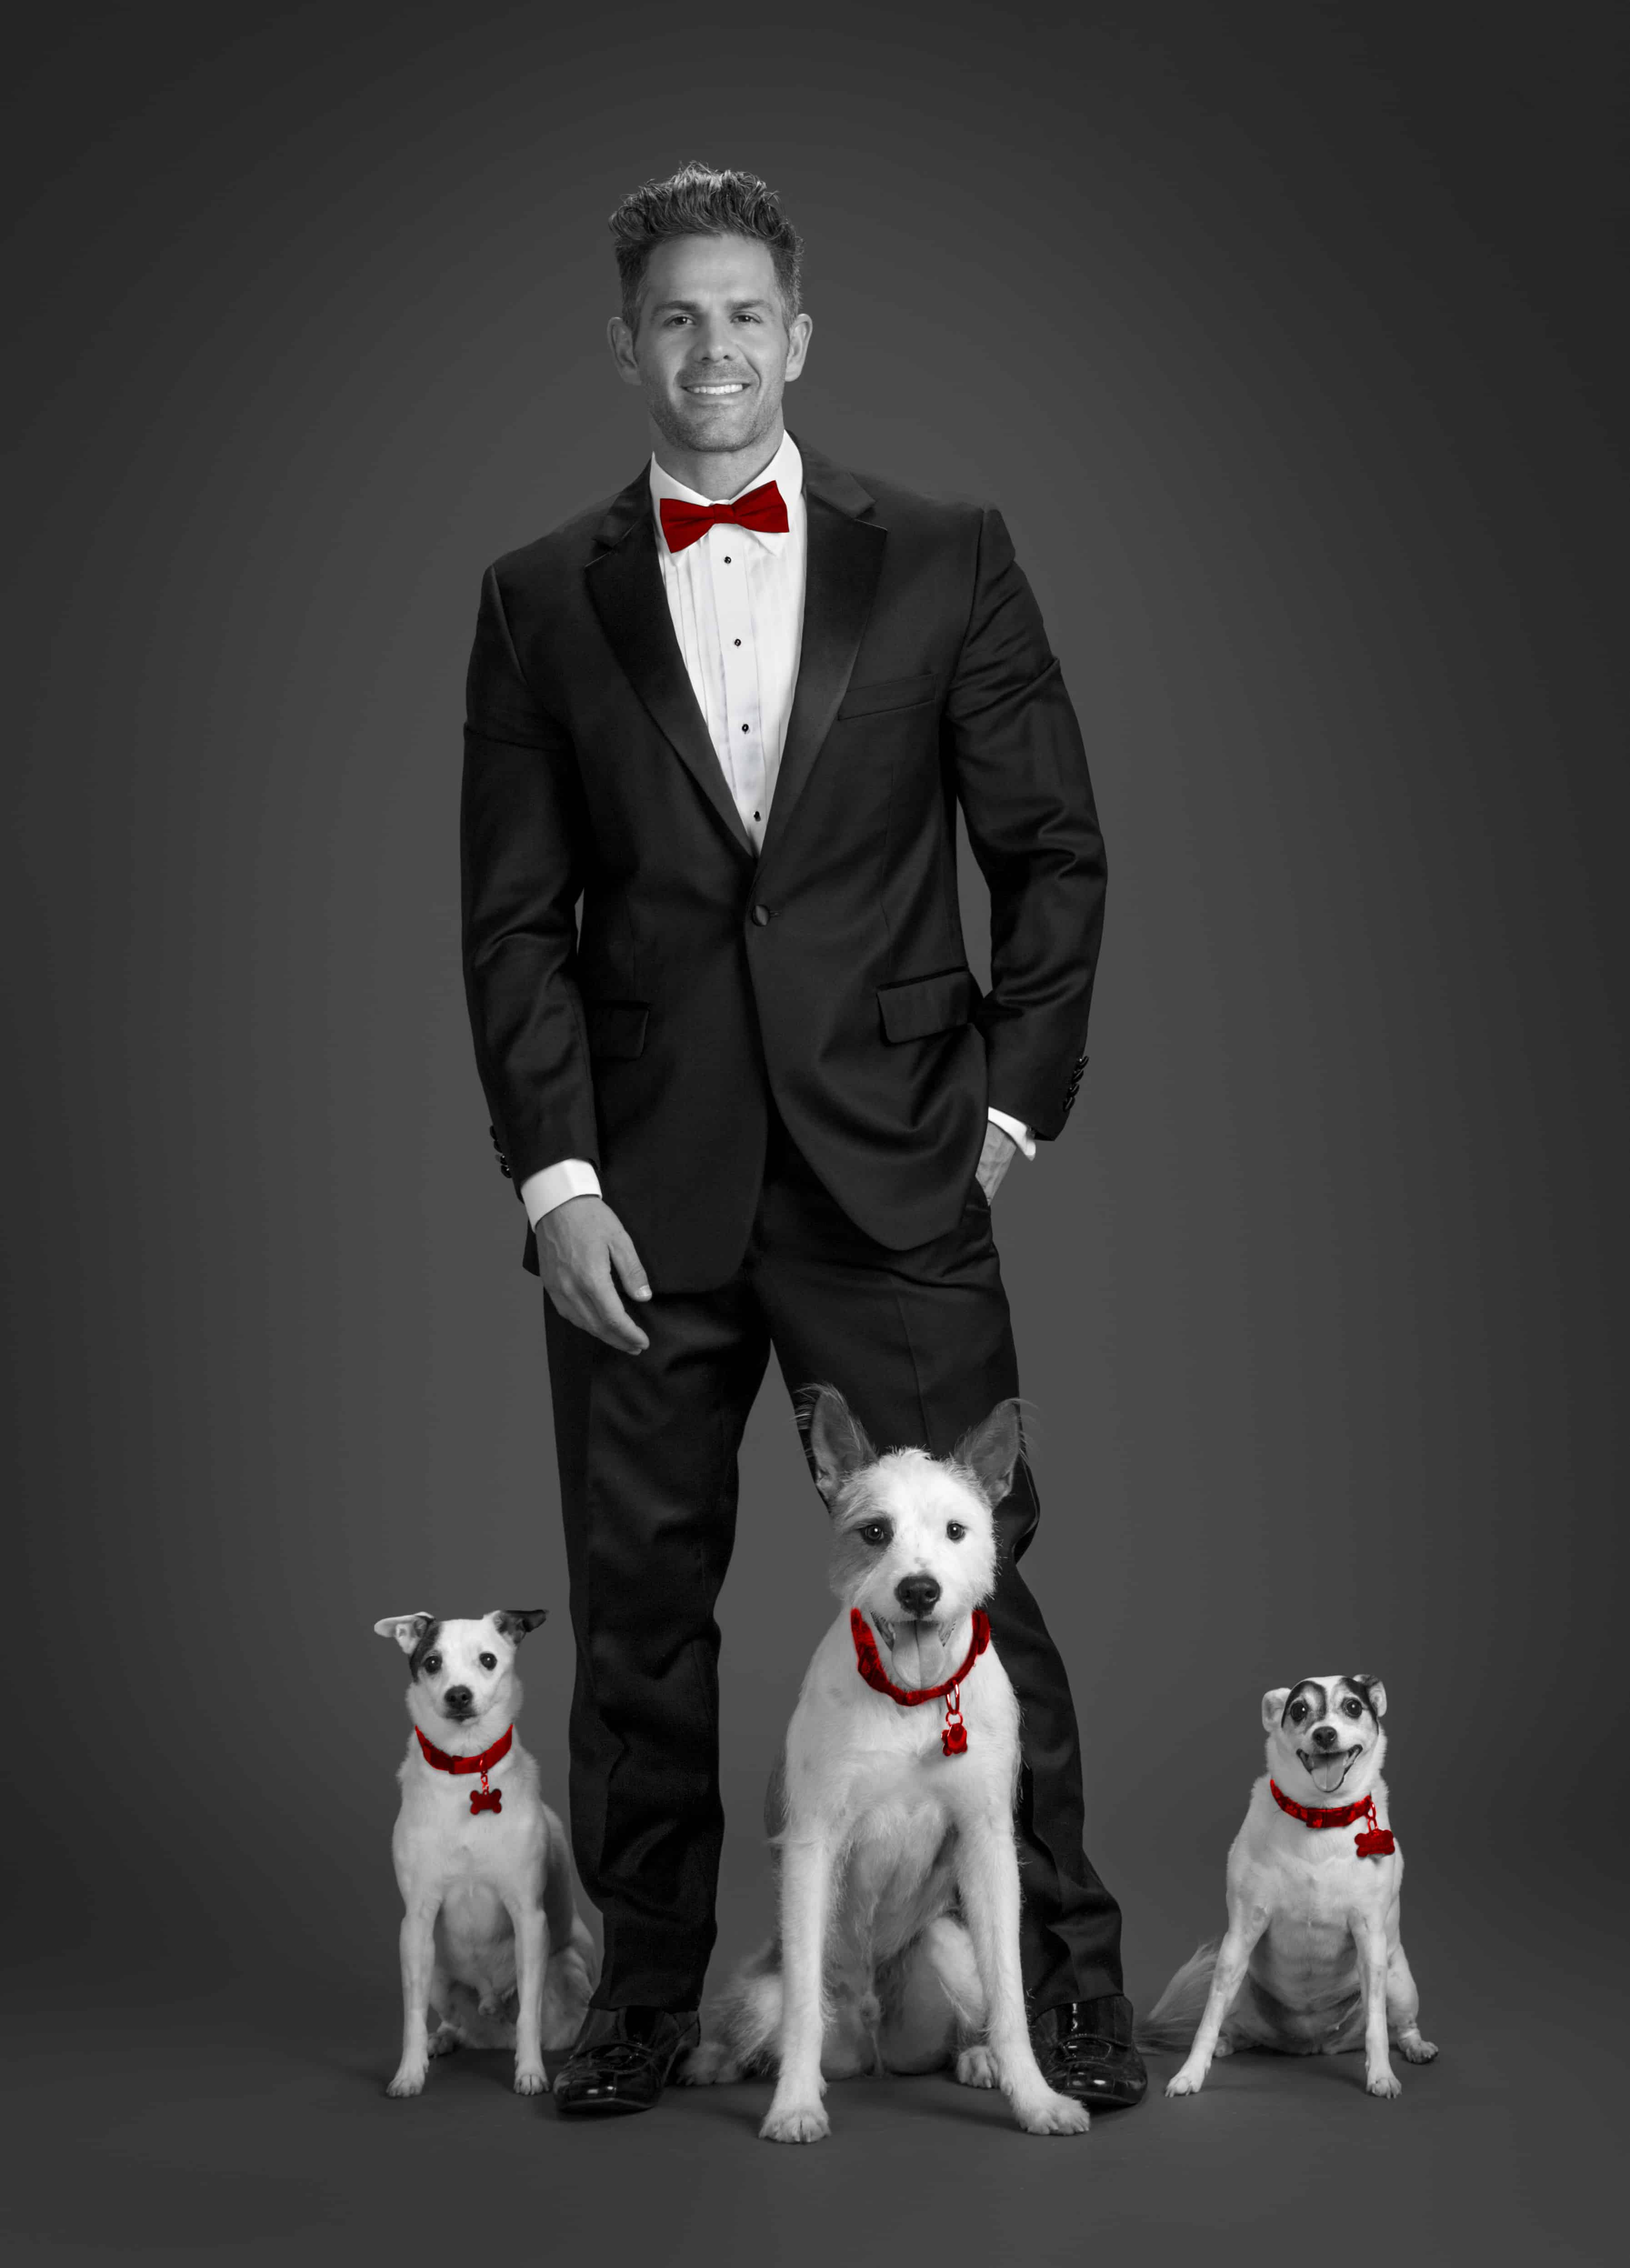 Eric-Turner-photo-with-his-dogs-Houston-photographer-Evin-Thayer-Studios